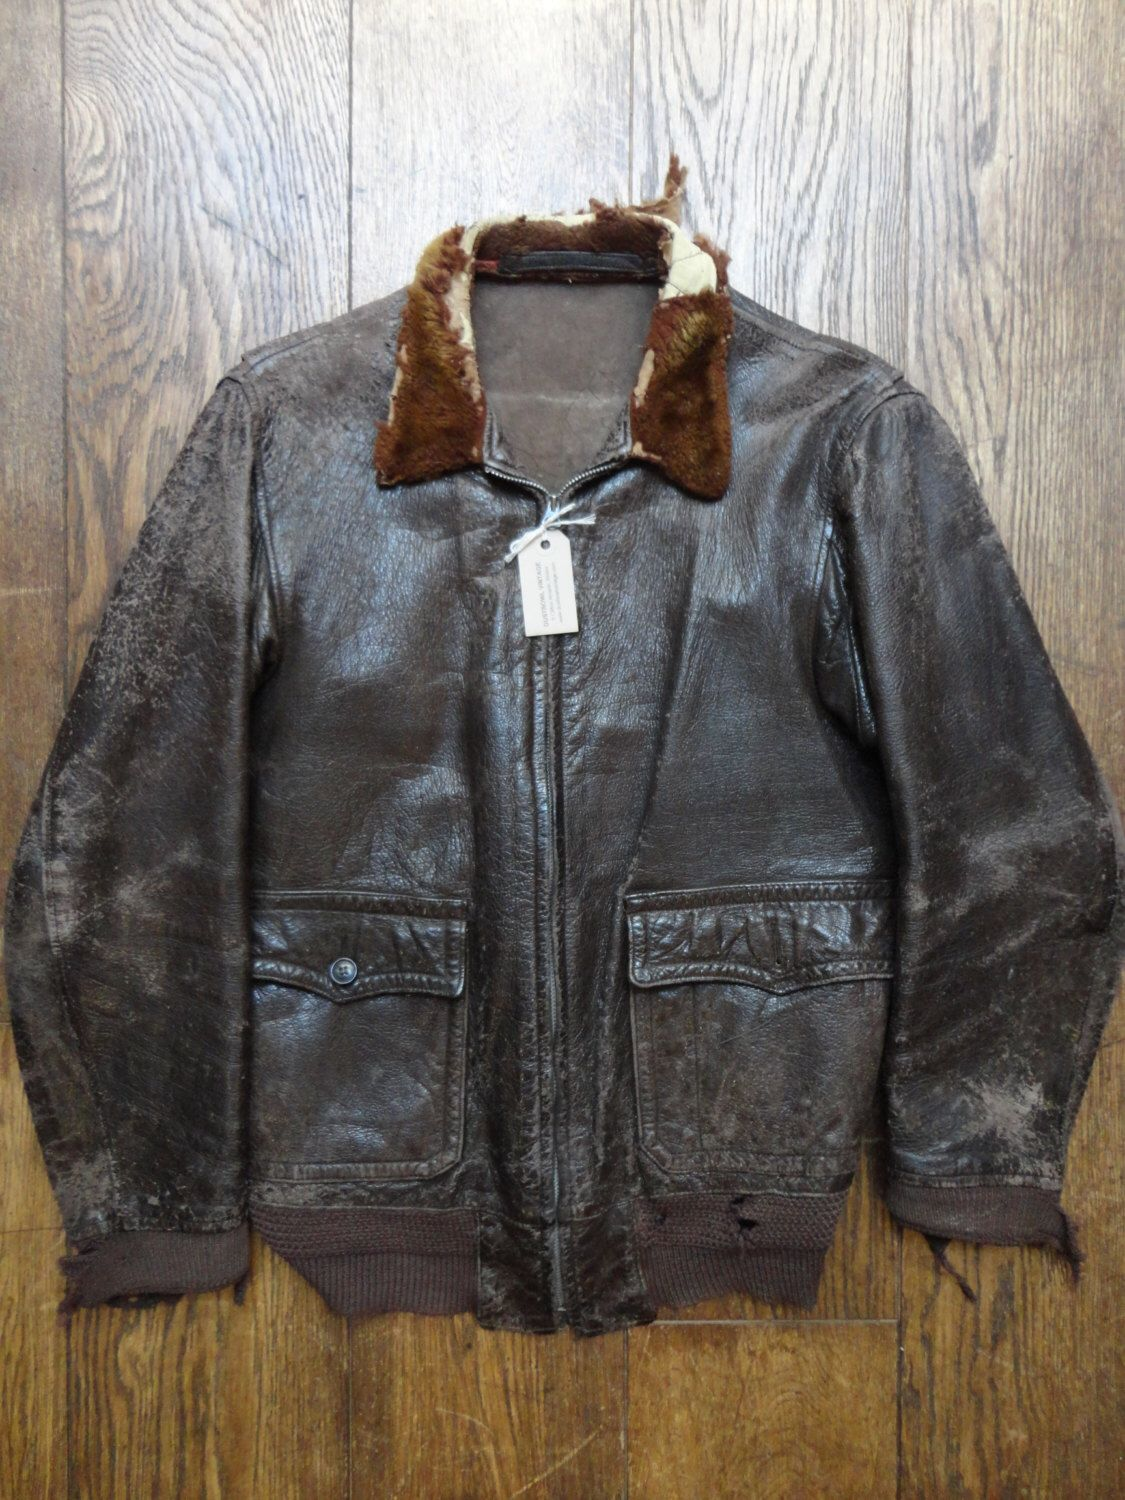 Vintage repair research restoration 1940s USN US Navy Type G-1 M422A ANJ-3 goatskin leather jacket Talon zipper rib rack mouton collar ww2 by TheDustbowlVintage on Etsy https://www.etsy.com/listing/262885813/vintage-repair-research-restoration